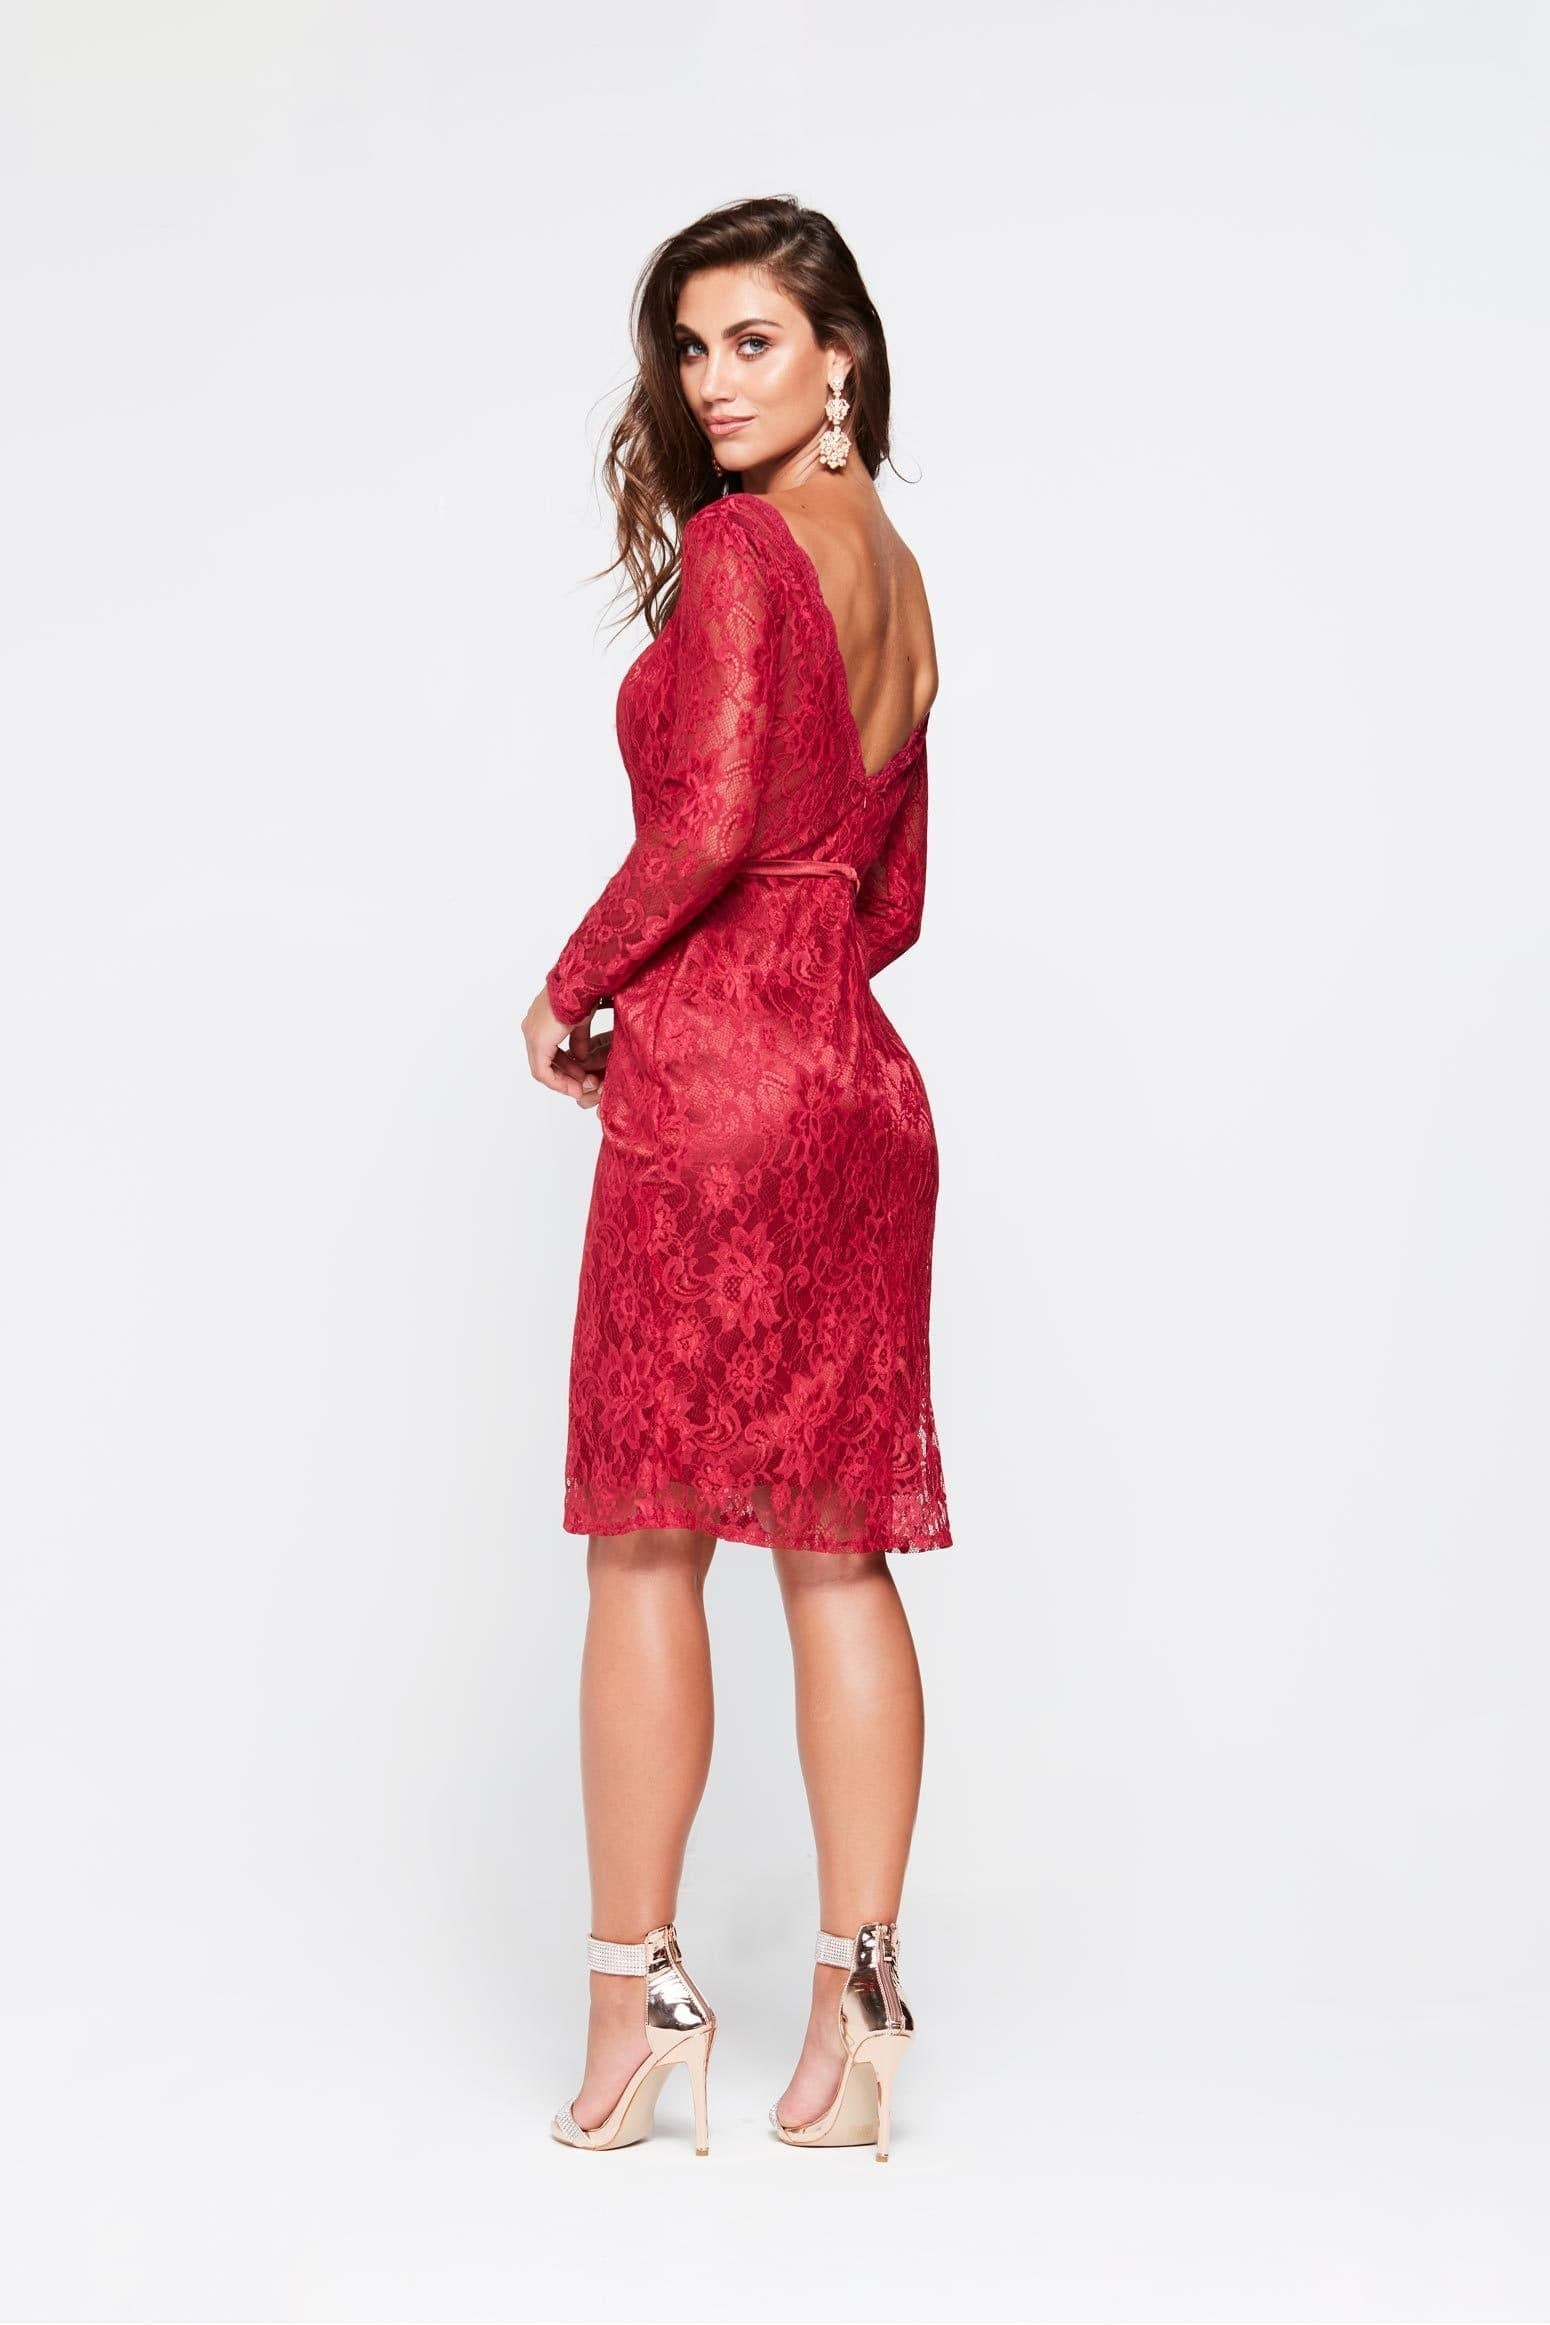 3fcfaa98354 A N Grace- Deep Red Lace Mini Cocktail Dress with Long Sleeves – A N ...